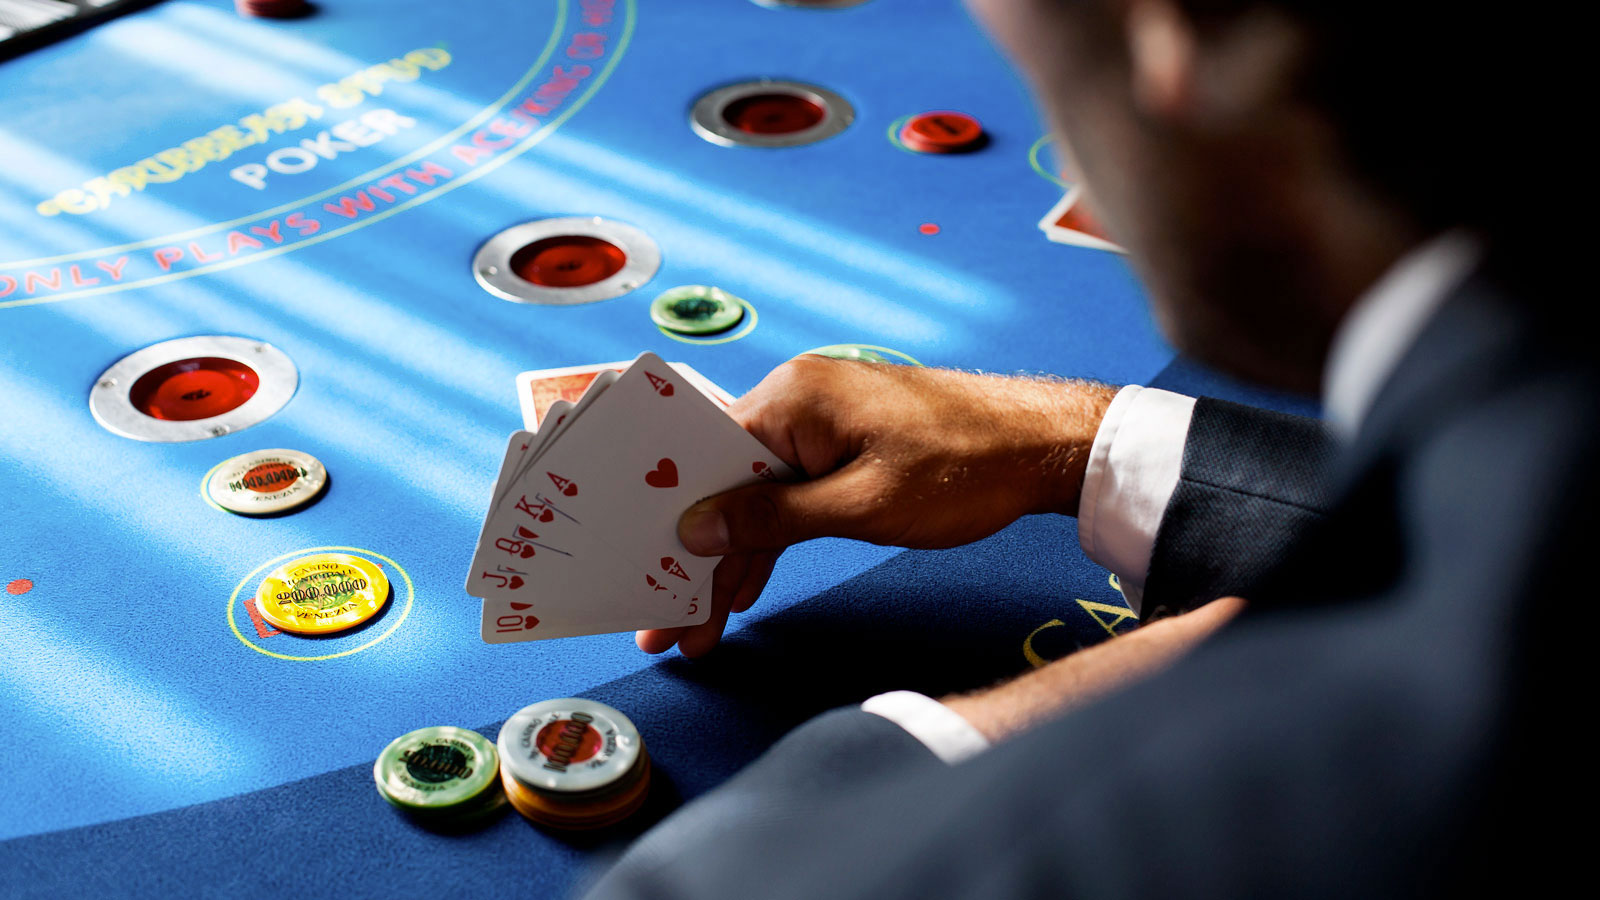 Things to have a clear understanding of poker merits